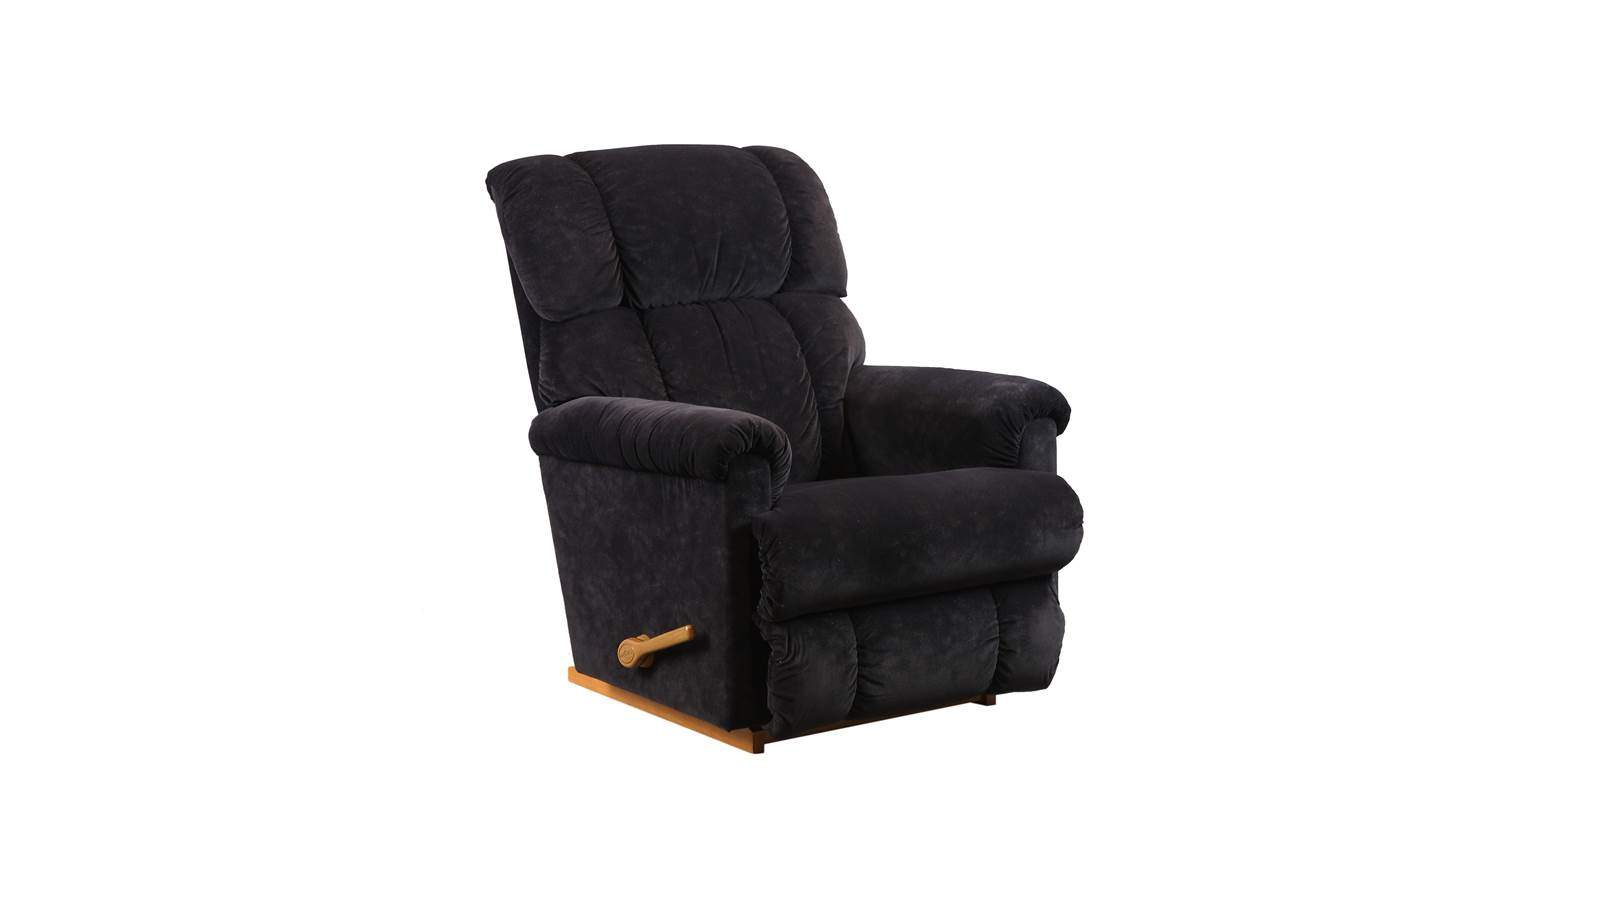 Lazy Boy Sleeper Chair Home Furniture Living Room Recliner La Z Boy Pinnacle Reclina Rocker Recliner Chair